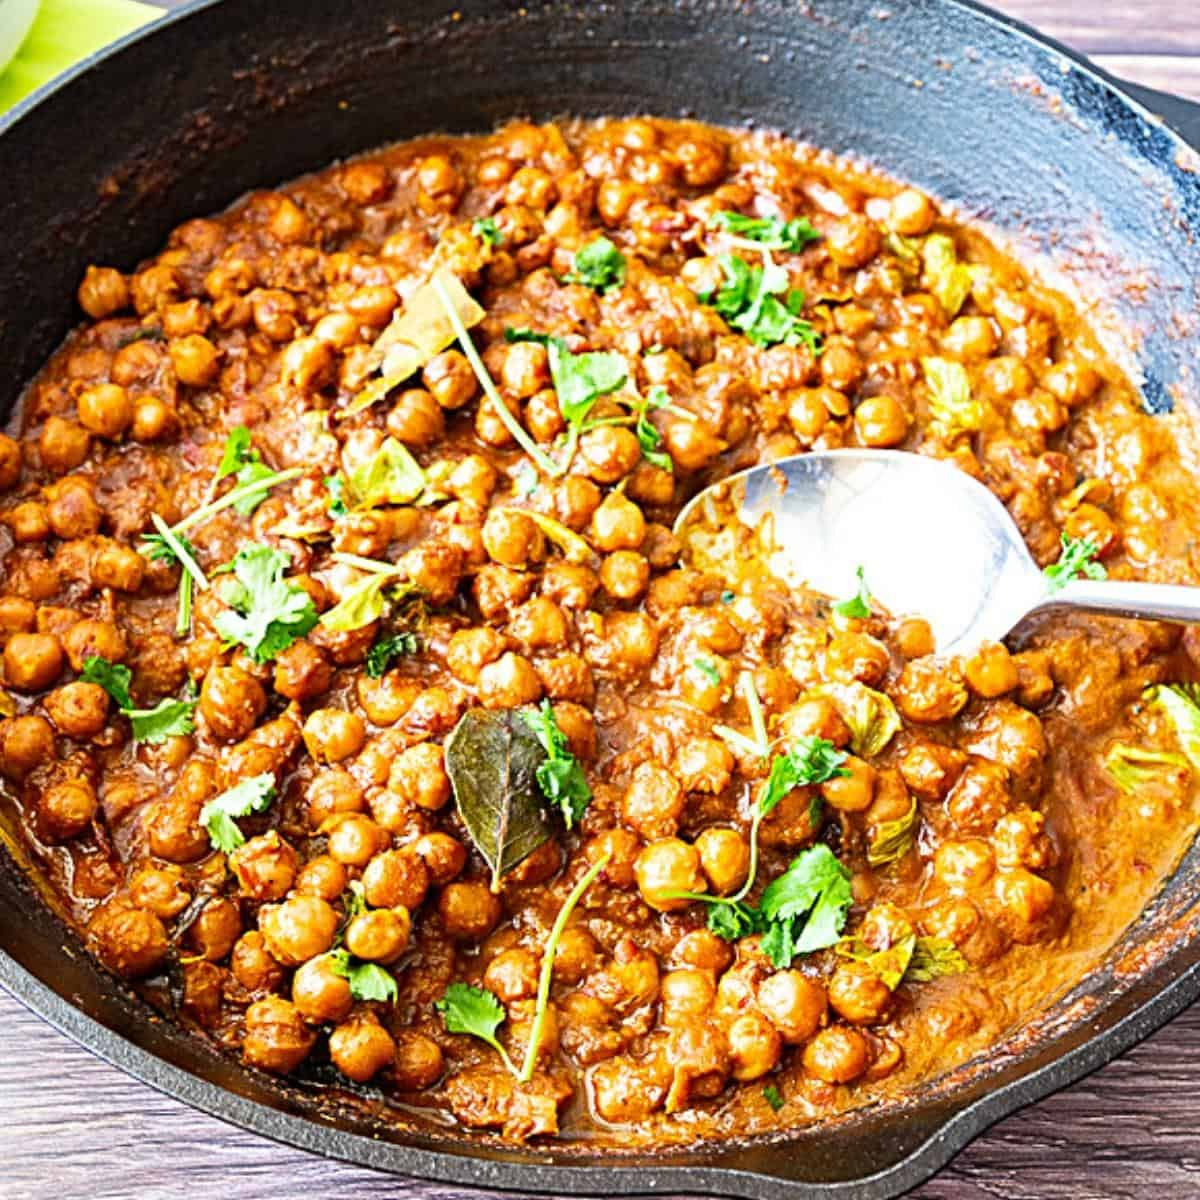 A skillet with curry made with chickpeas.